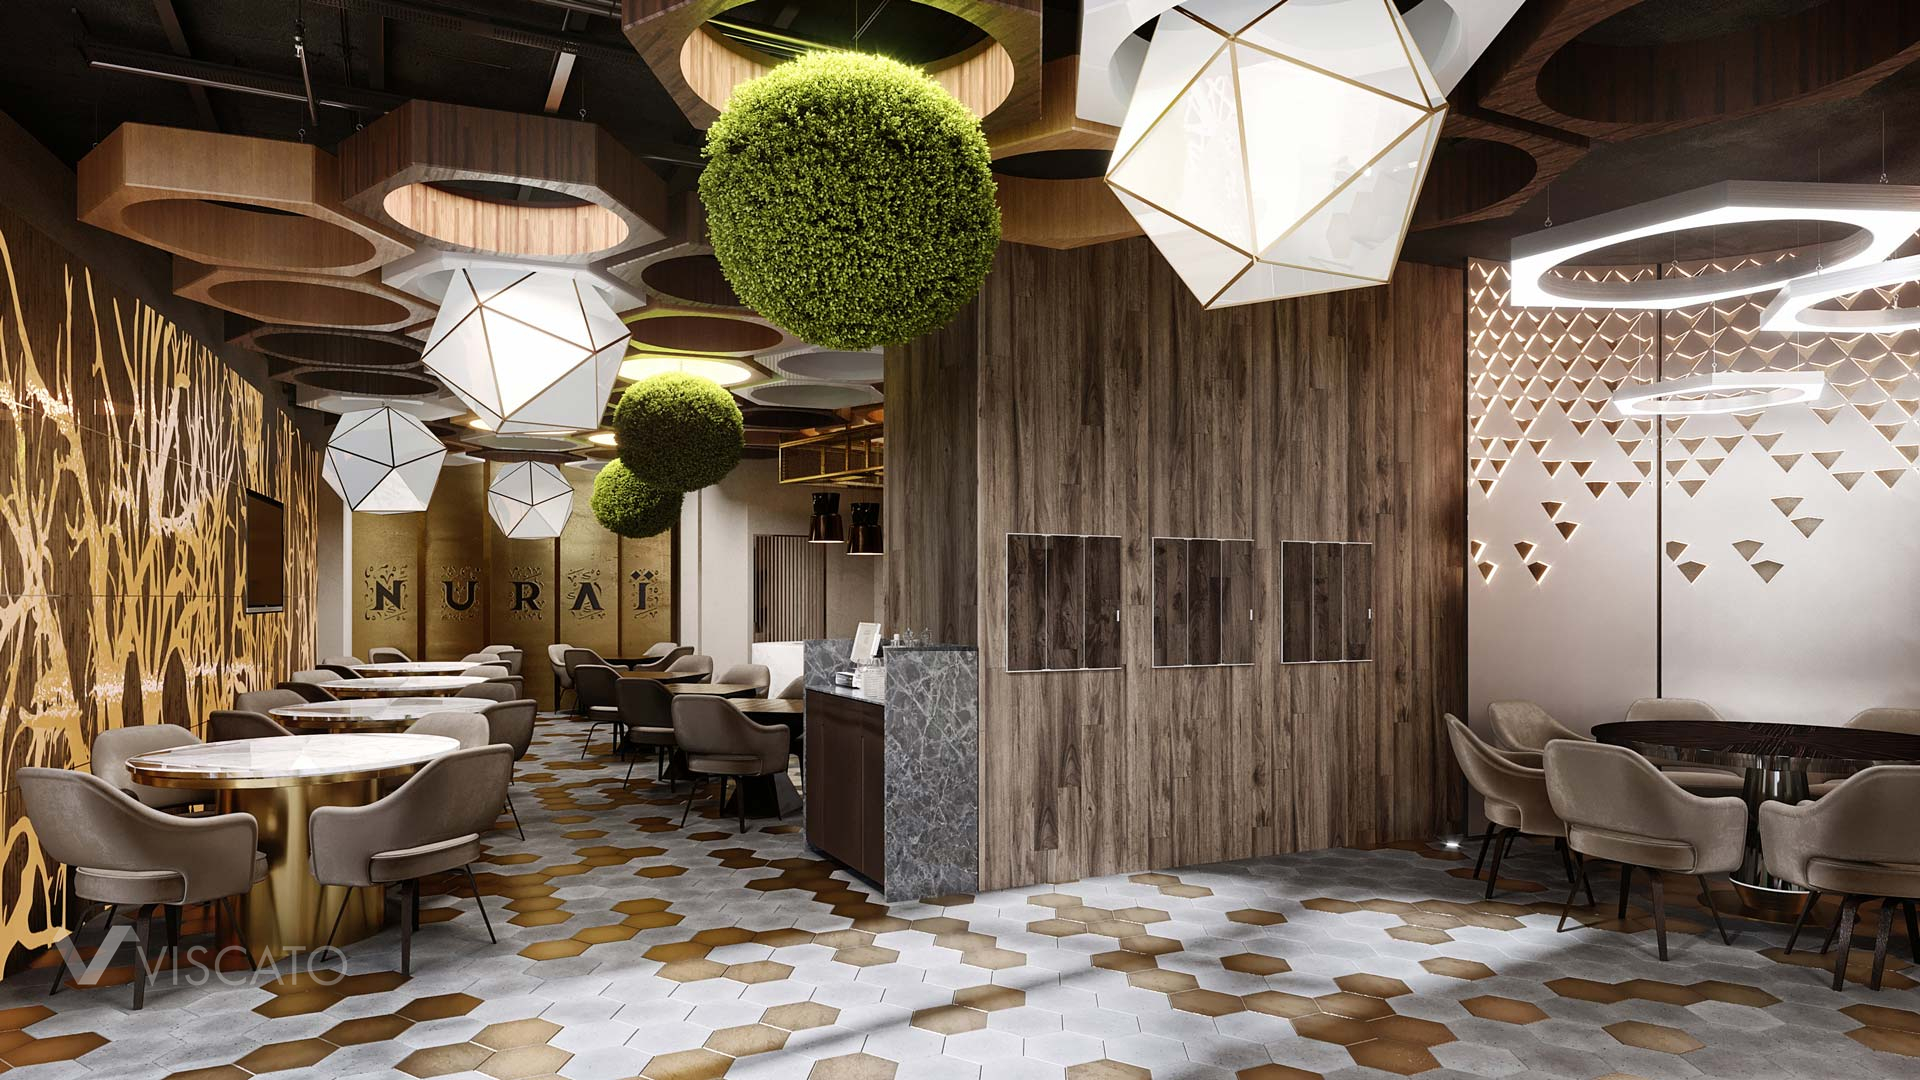 Modern restaurant interiors with hexagons, Viscato 3D